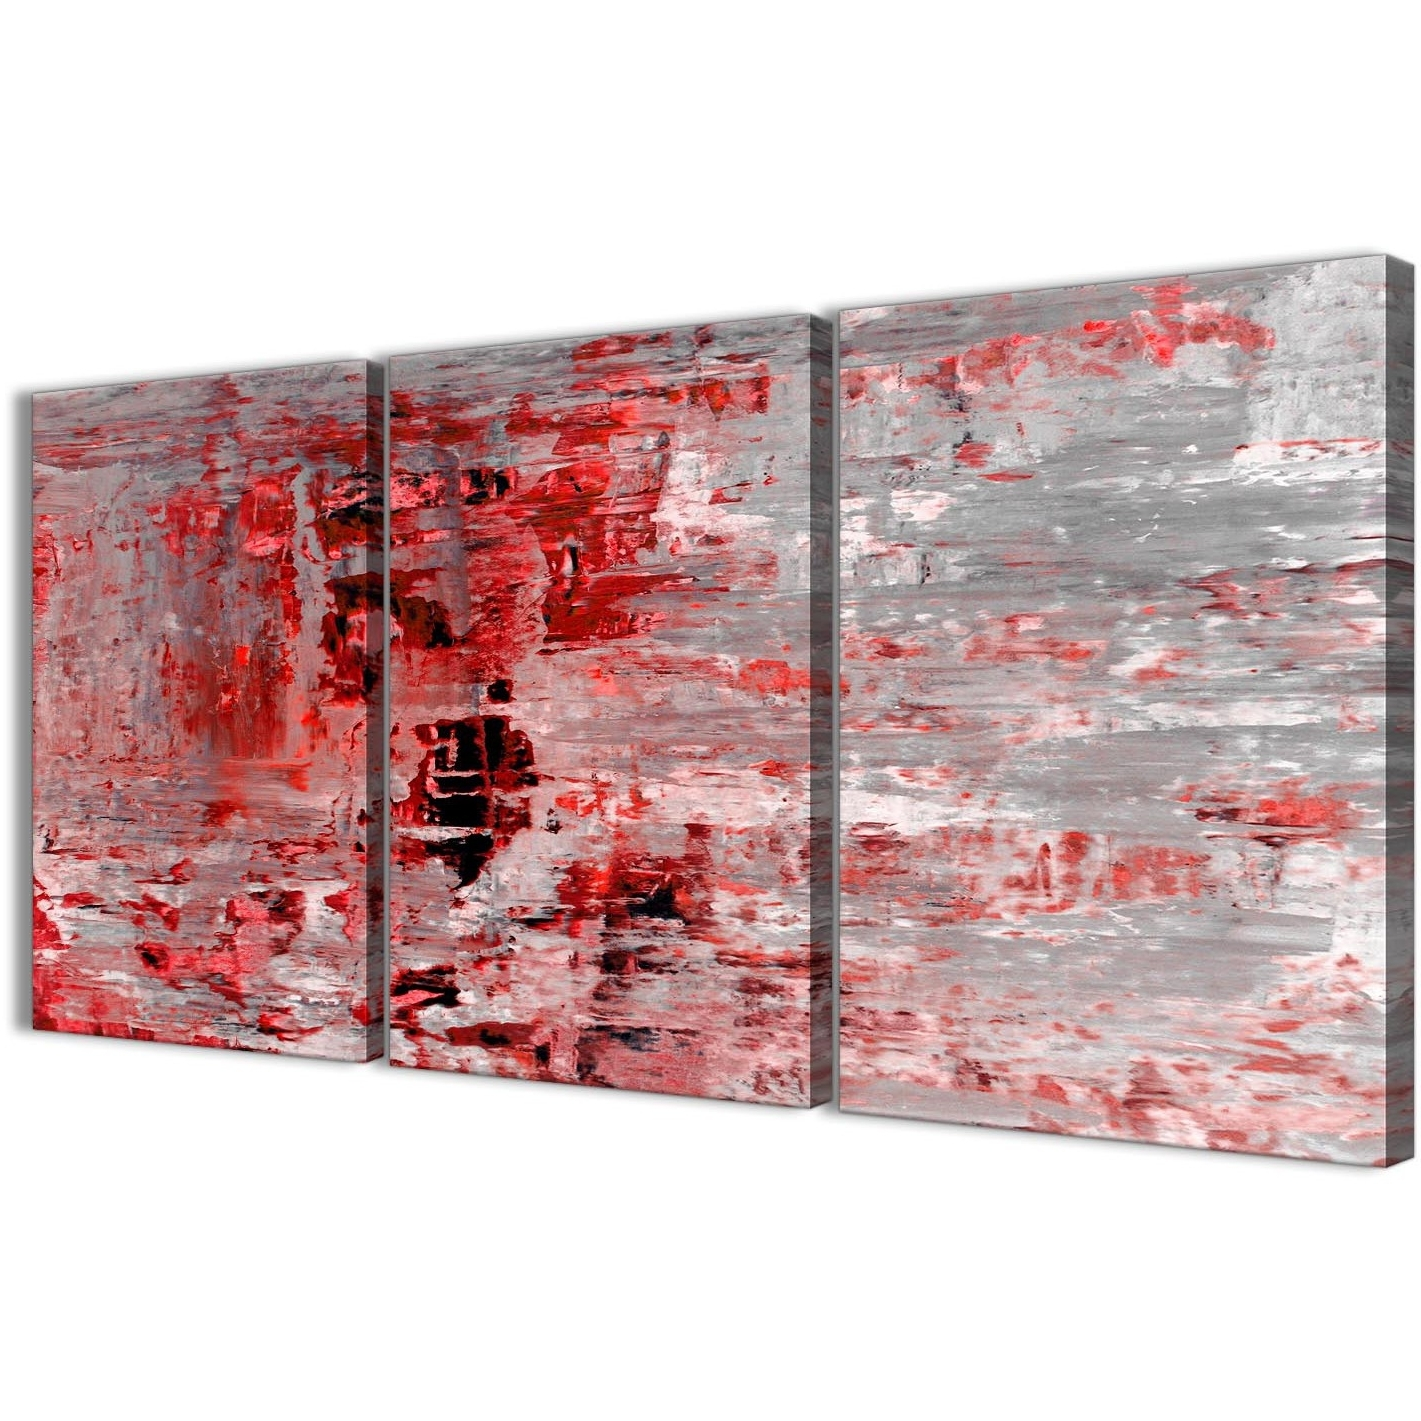 Preferred 3 Piece Red Grey Painting Living Room Canvas Wall Art Decor For Kitchen Canvas Wall Art (View 12 of 15)